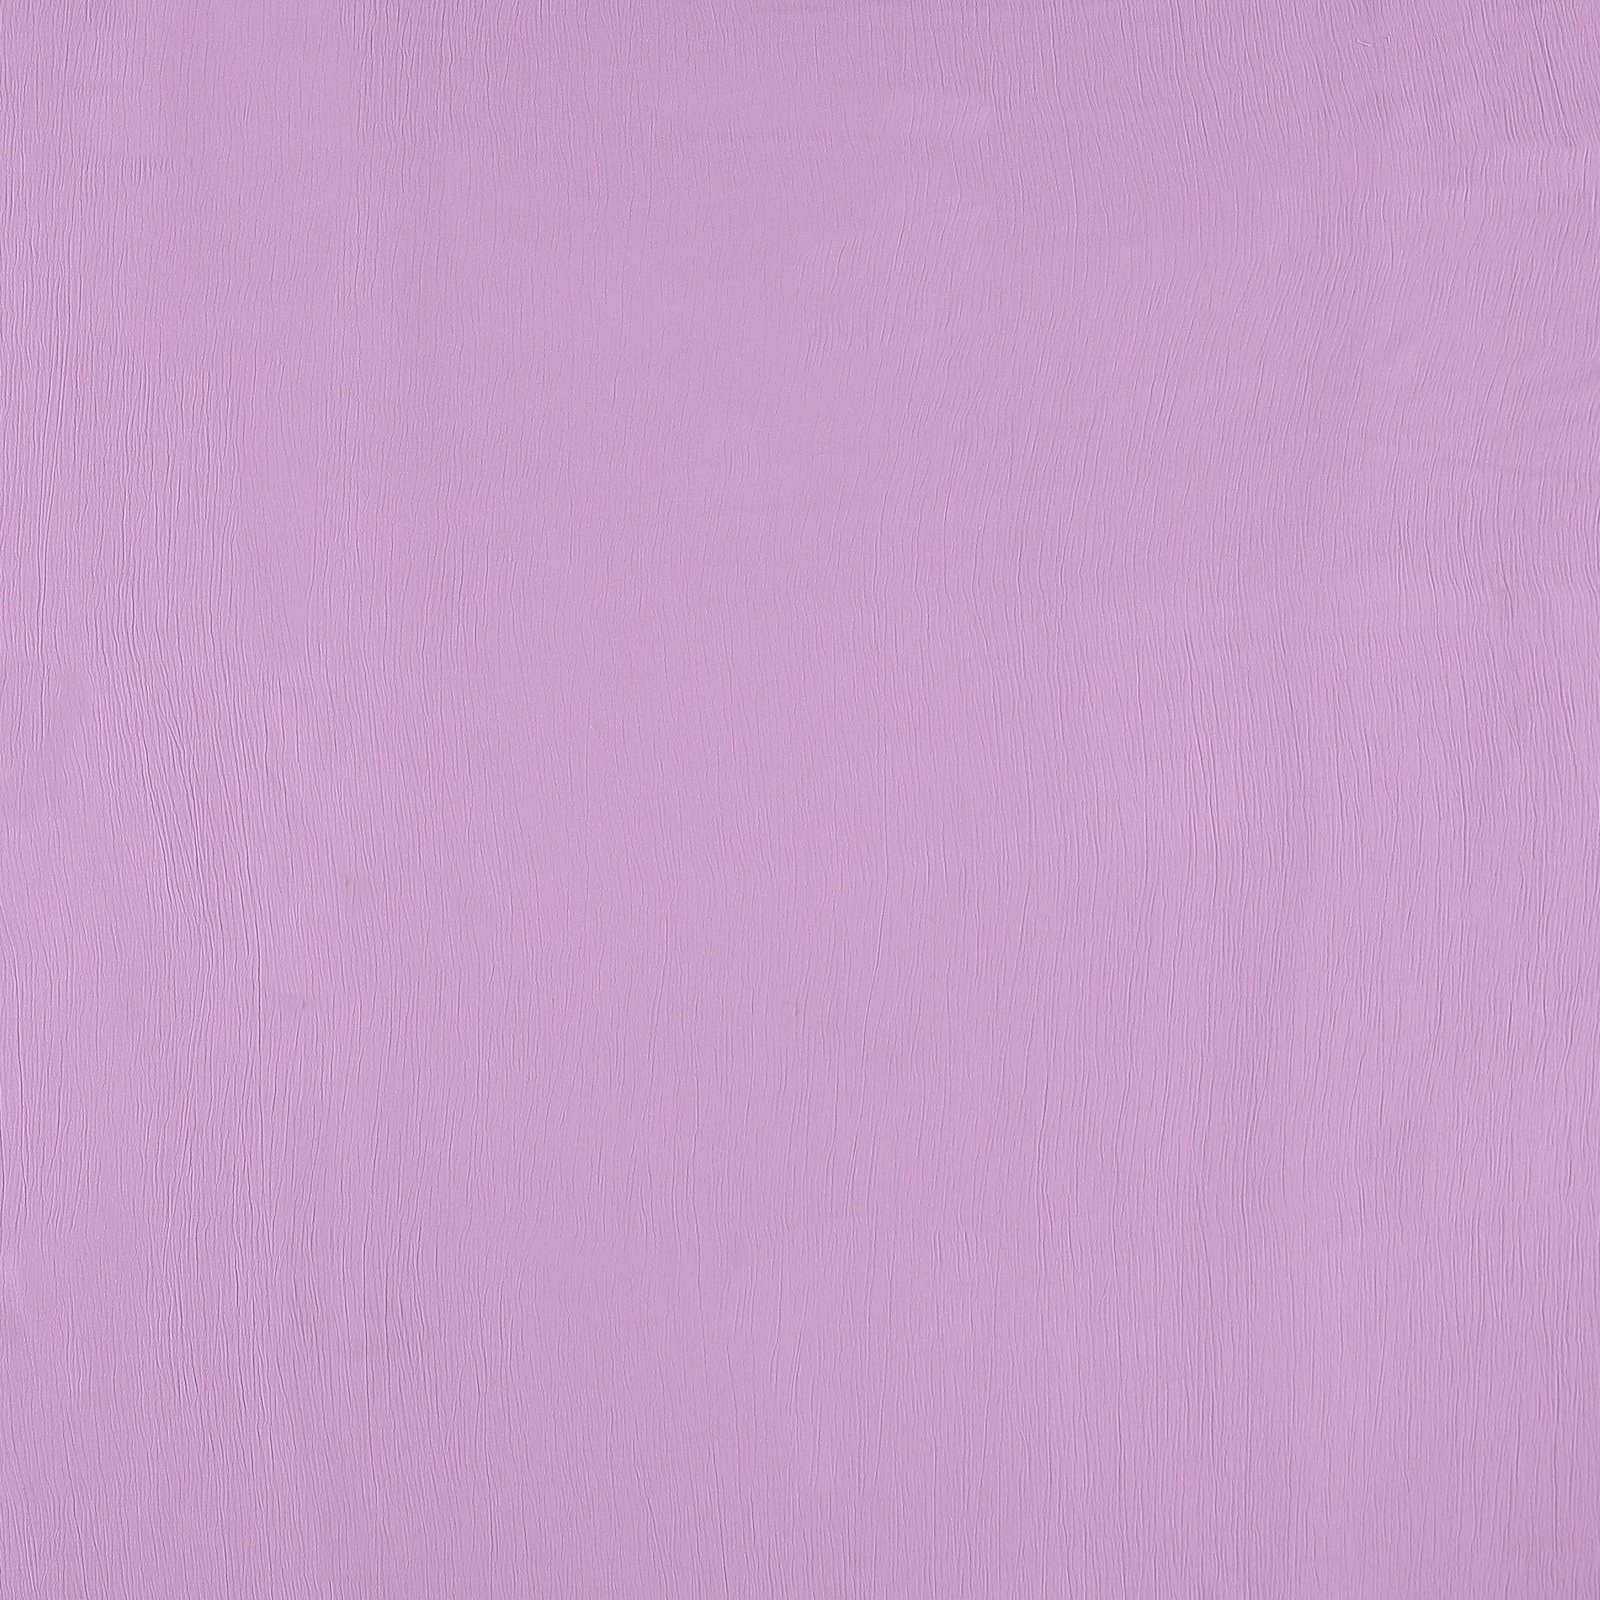 Woven crepe viscose bright lavender 730000_pack_solid